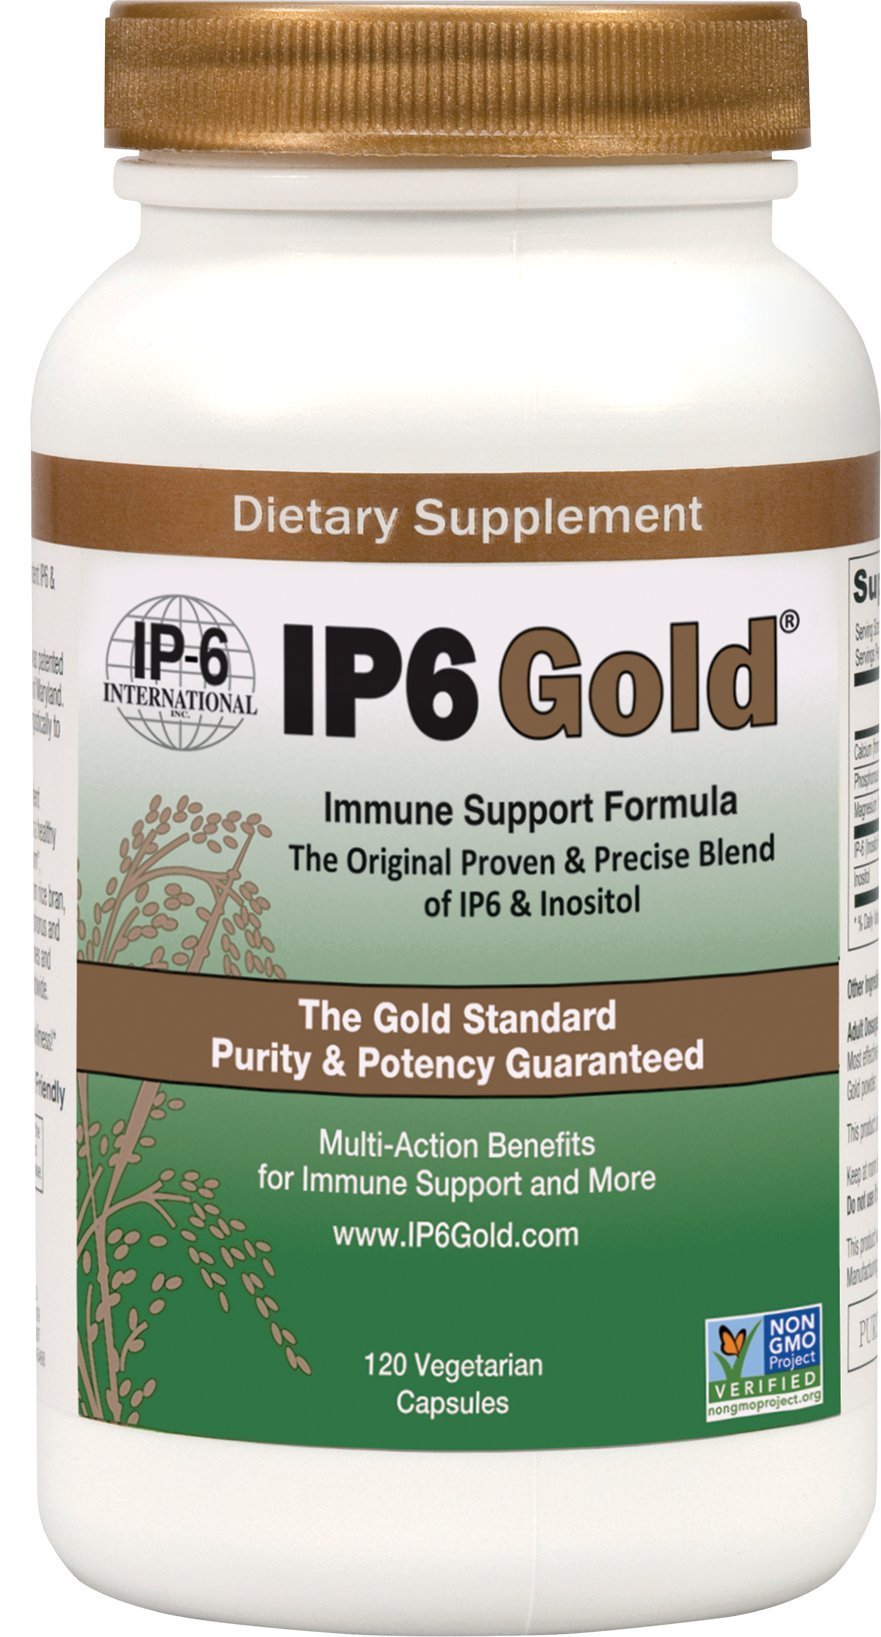 IP-6 International IP6 Gold Immune Support Formula 120 Vegetarian Capsules